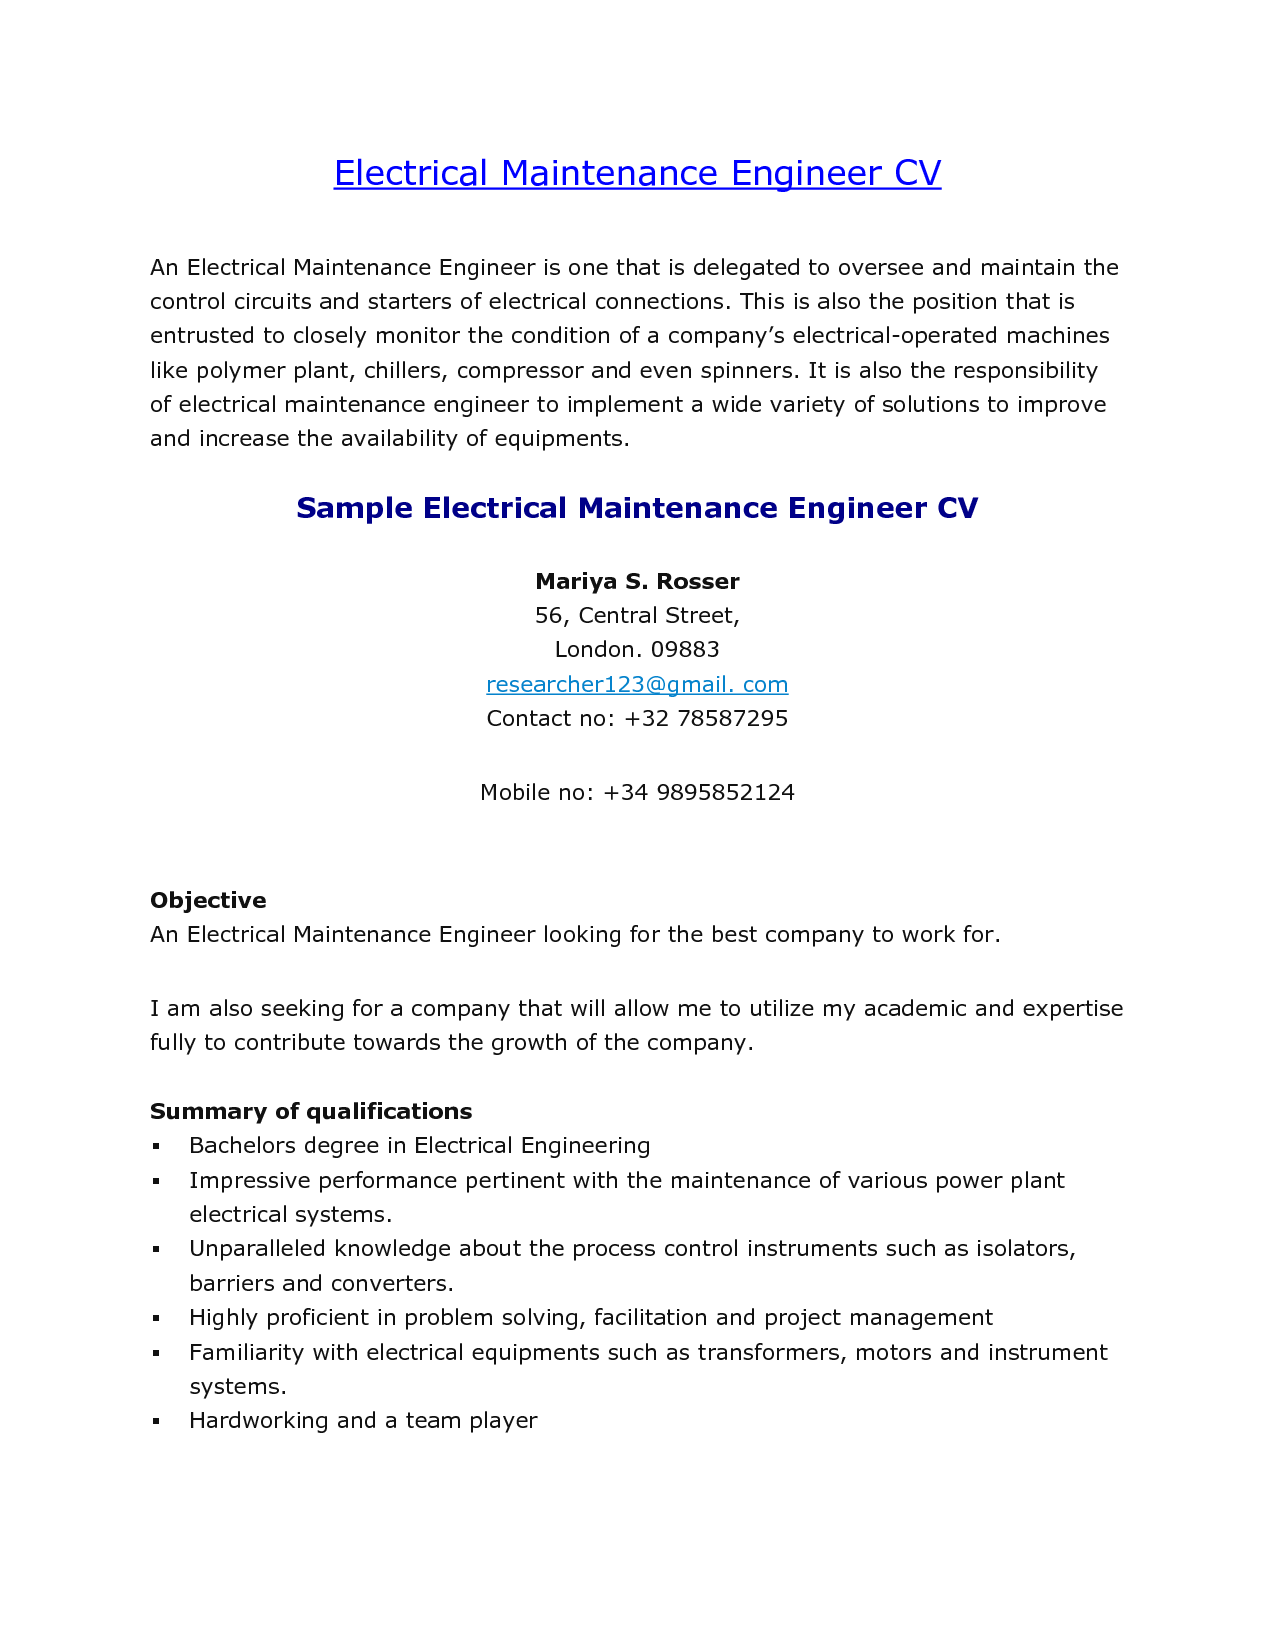 sample resume of electrical maintenance engineer old version old version old version sample resume engineering curriculum vitae career cover letter